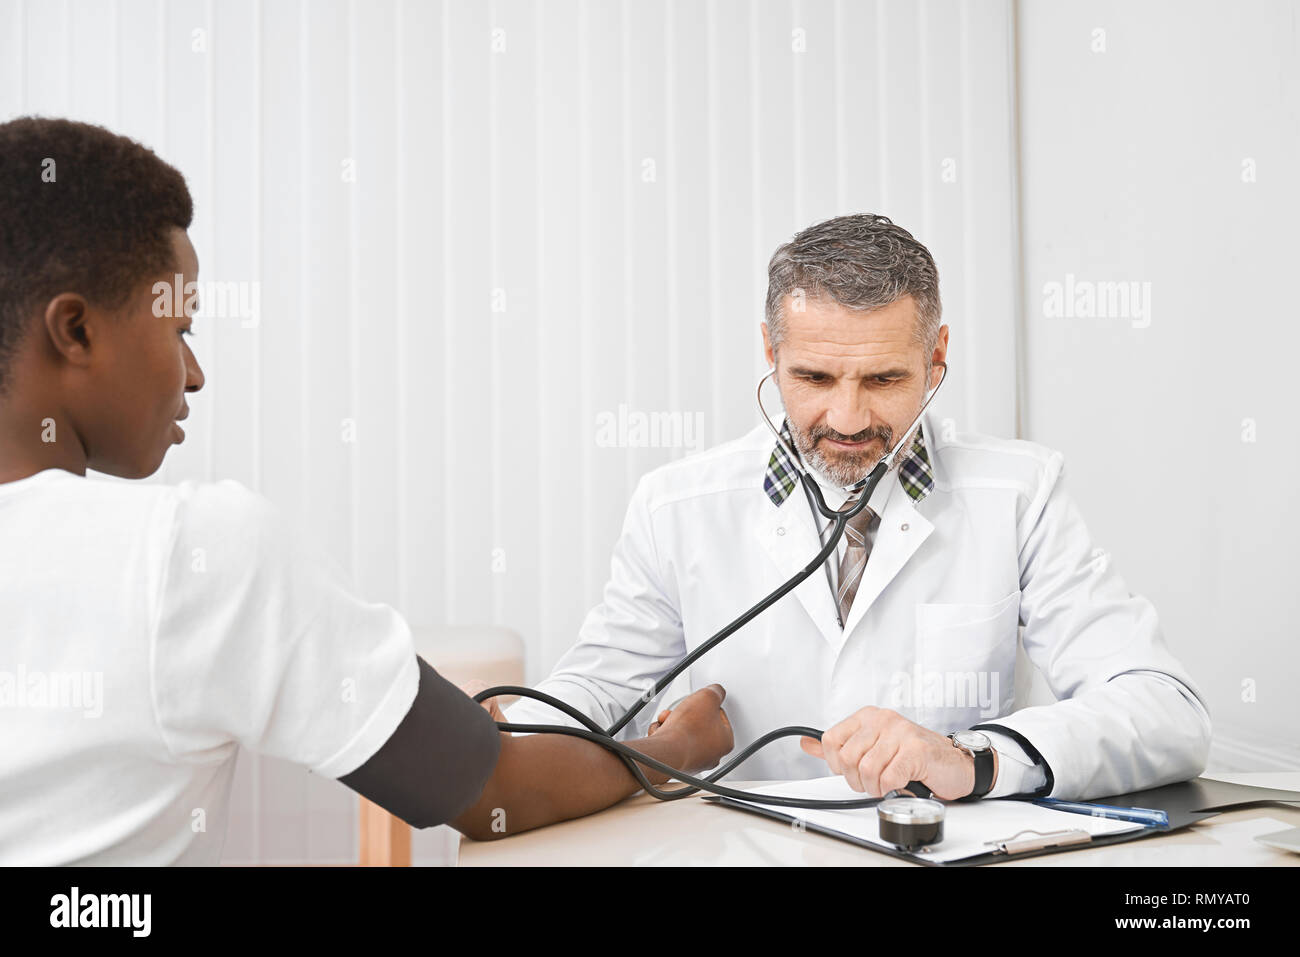 Young african man sitting, holding hand on table, while doctor measuring blood pressure. Professional therapist using sphygmomanometer for examination. Concept of cardiology. - Stock Image